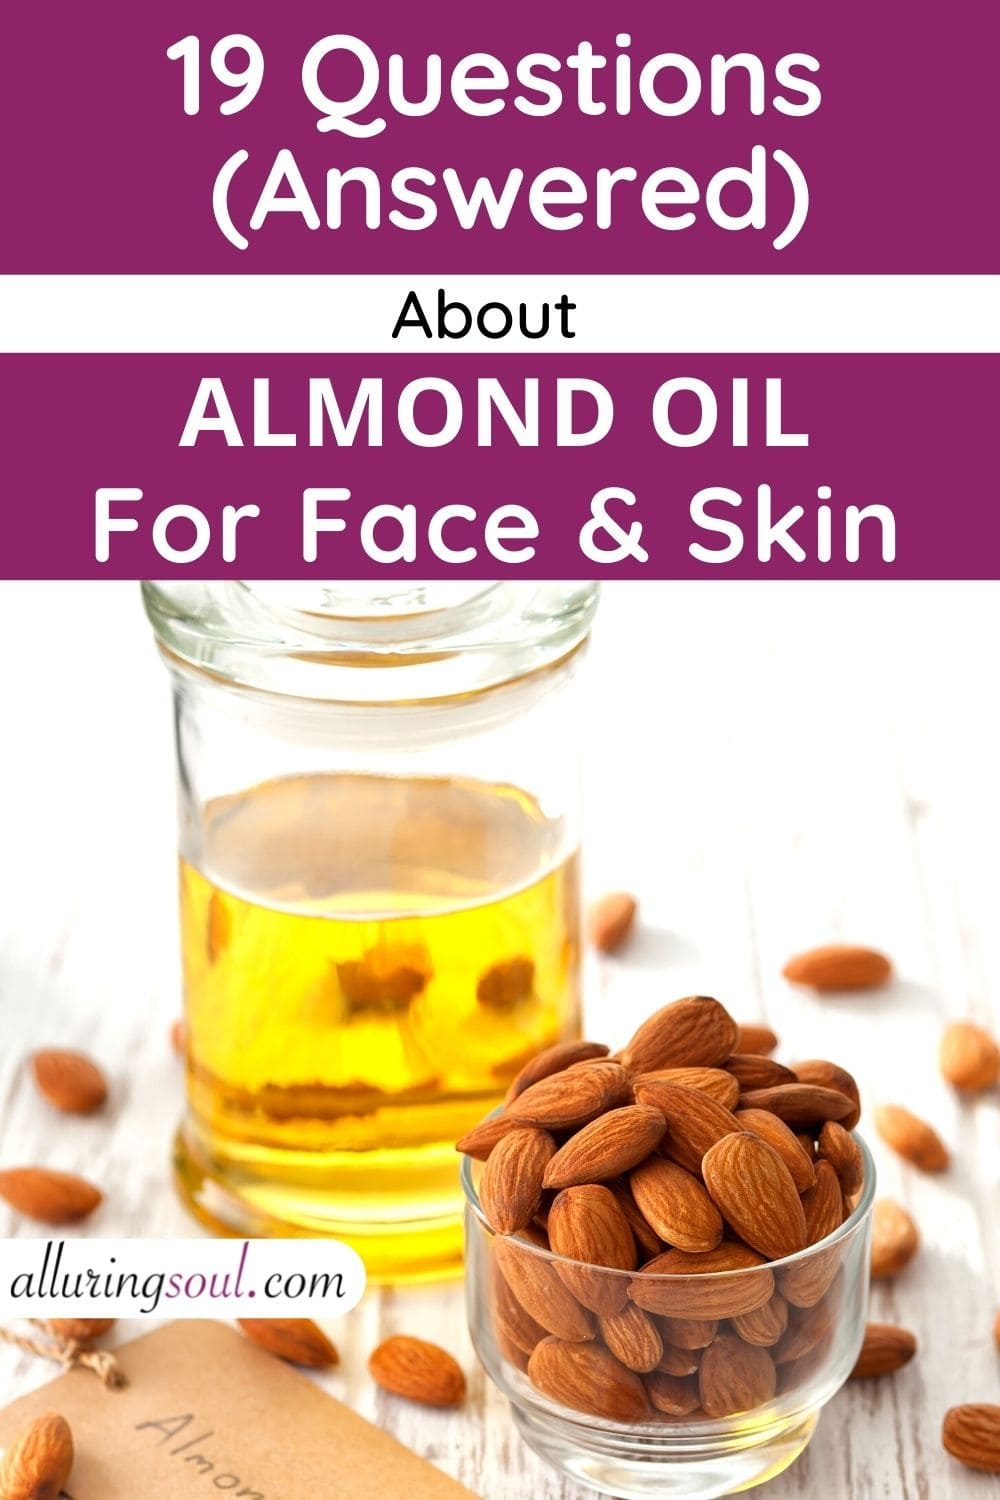 19 Questions about Almond Oil for Face and Skin (Answered)